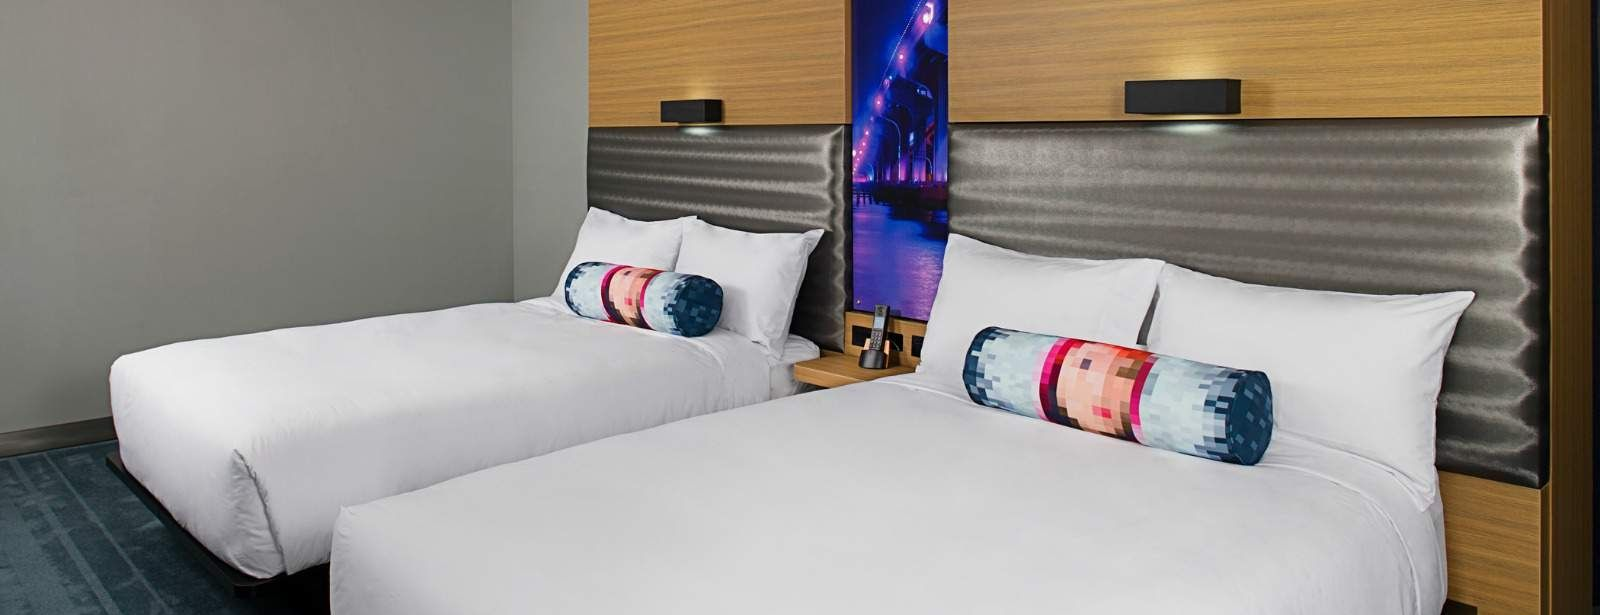 Brickell Accommodations - Aloft Oversized Room